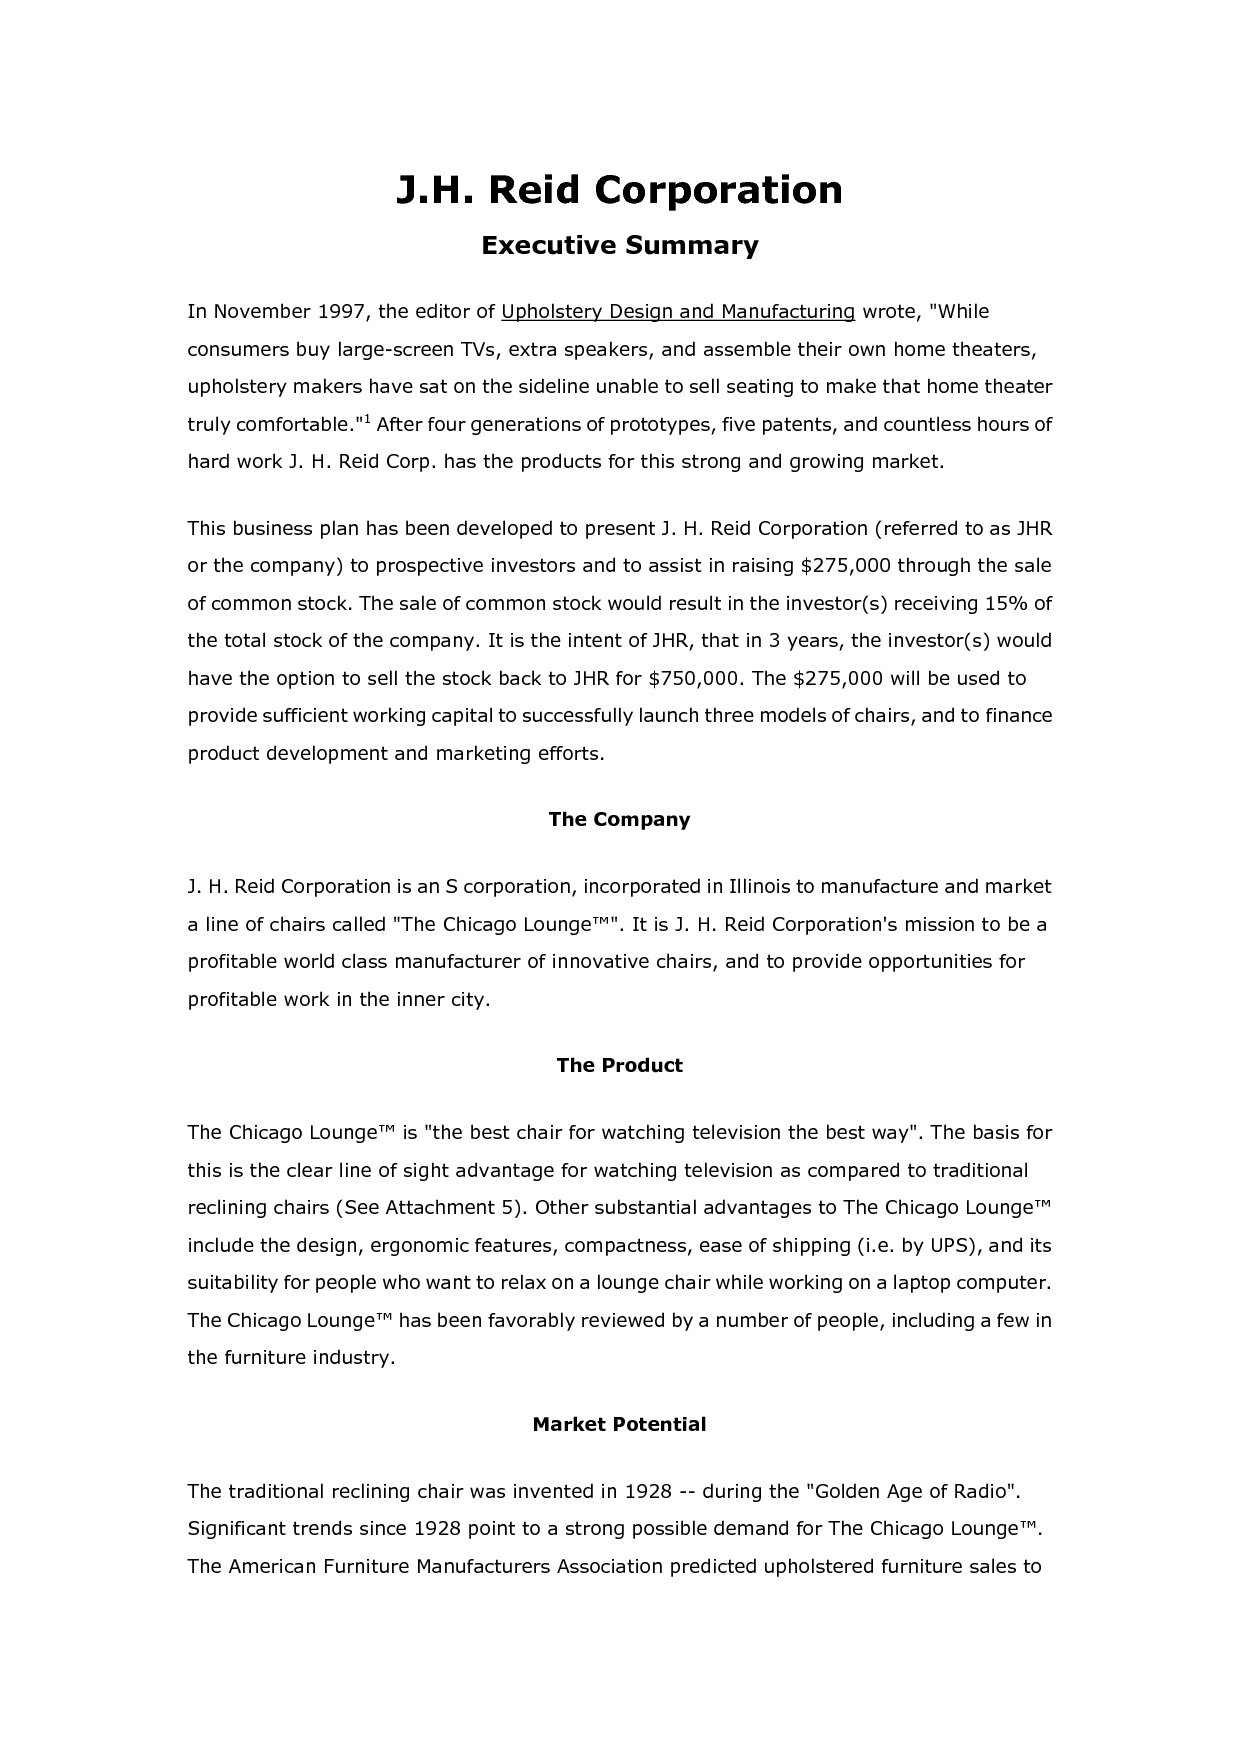 sample proposal essay examples of a proposal essay apa example examples of a proposal essayproposal essays modest proposal essay examples essay proposal template essay proposal template